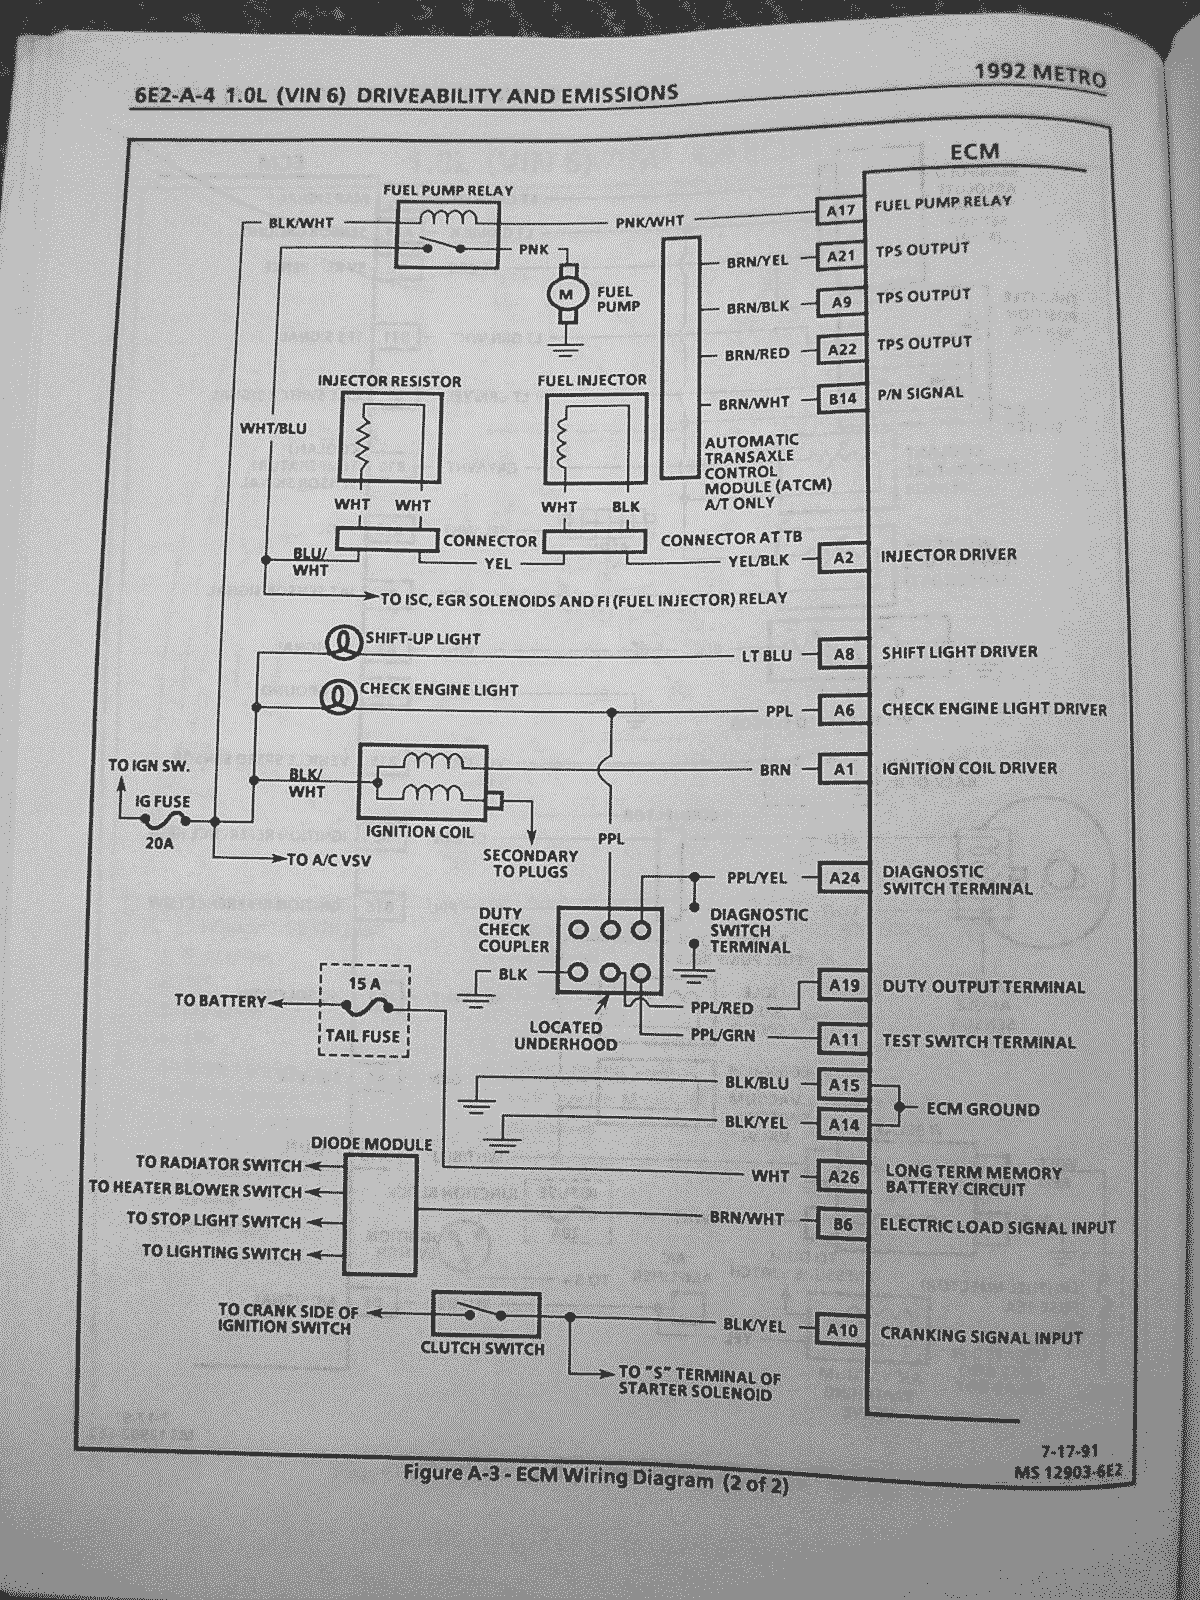 suzuki carry wiringdiagram wZCZeXX suzuki carry wiring diagram efcaviation com mitsubishi mini truck wiring diagram at edmiracle.co